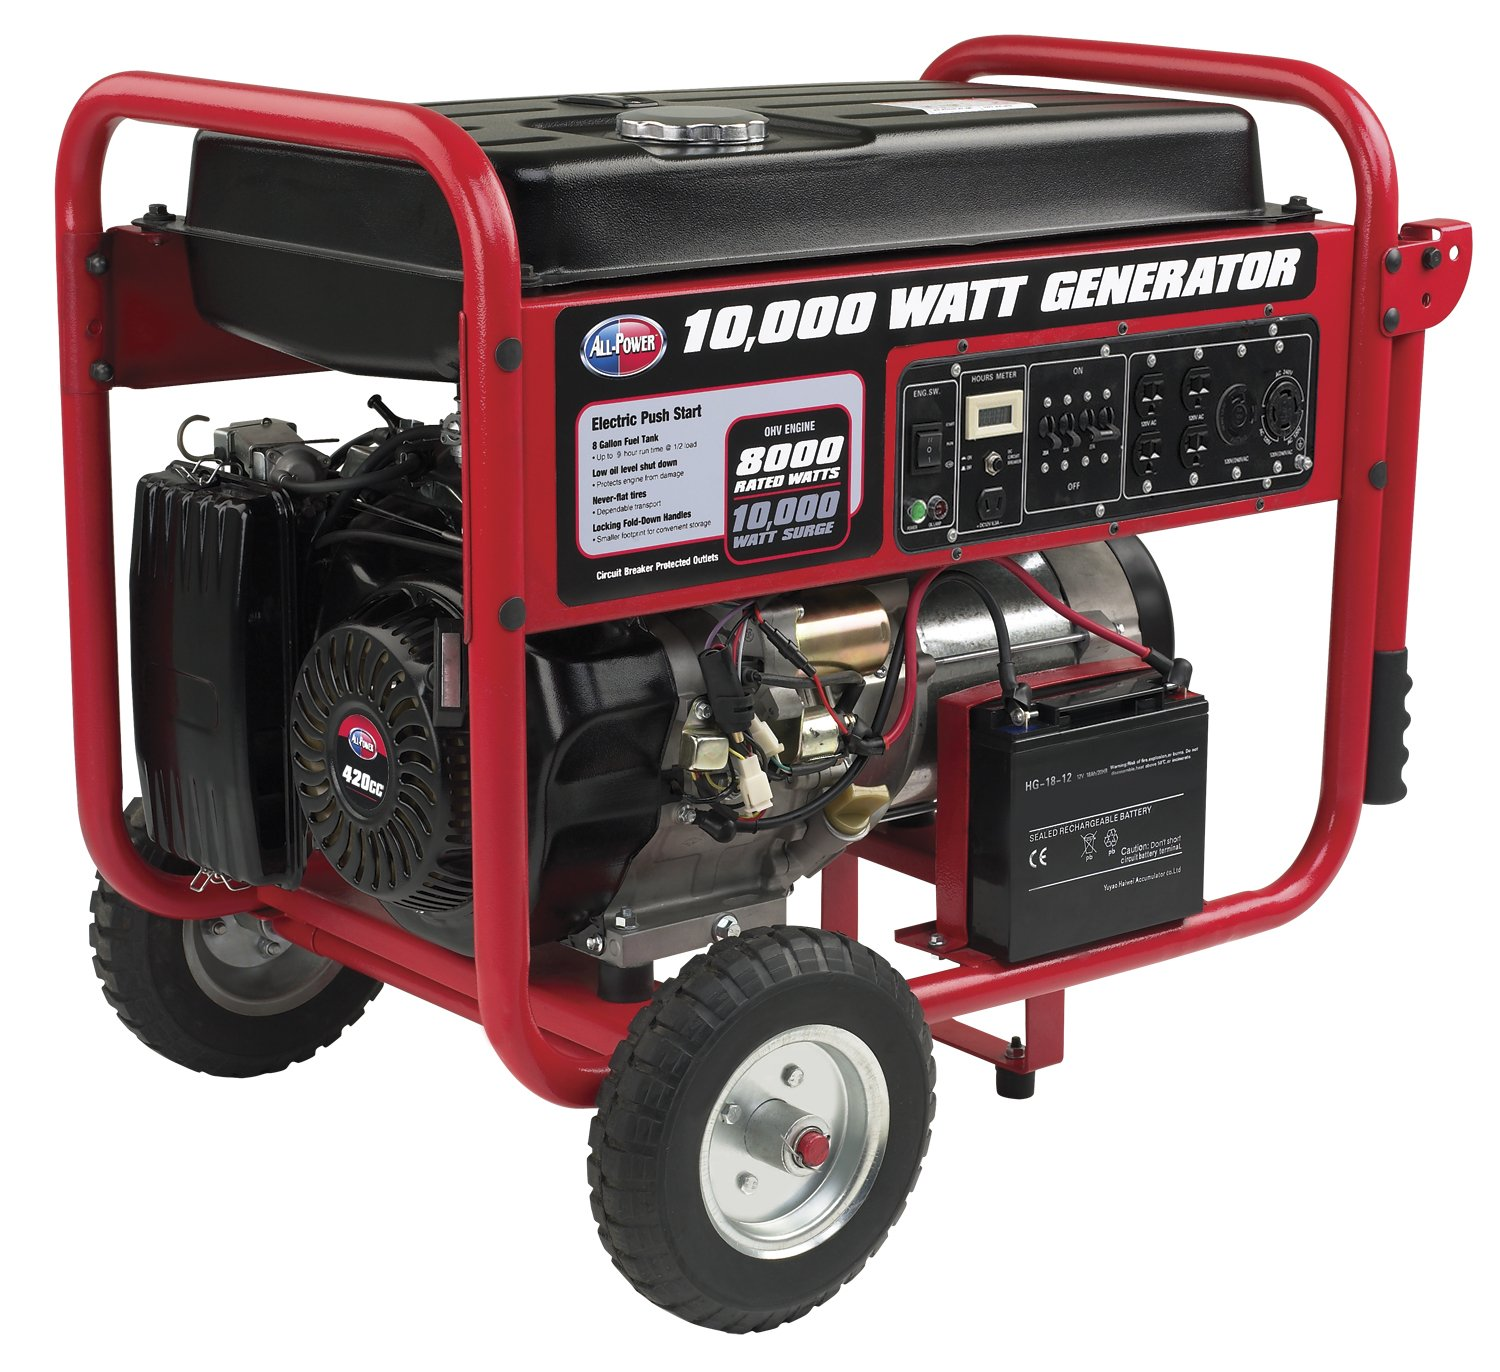 All Power America Gas Powered Portable Generator Review